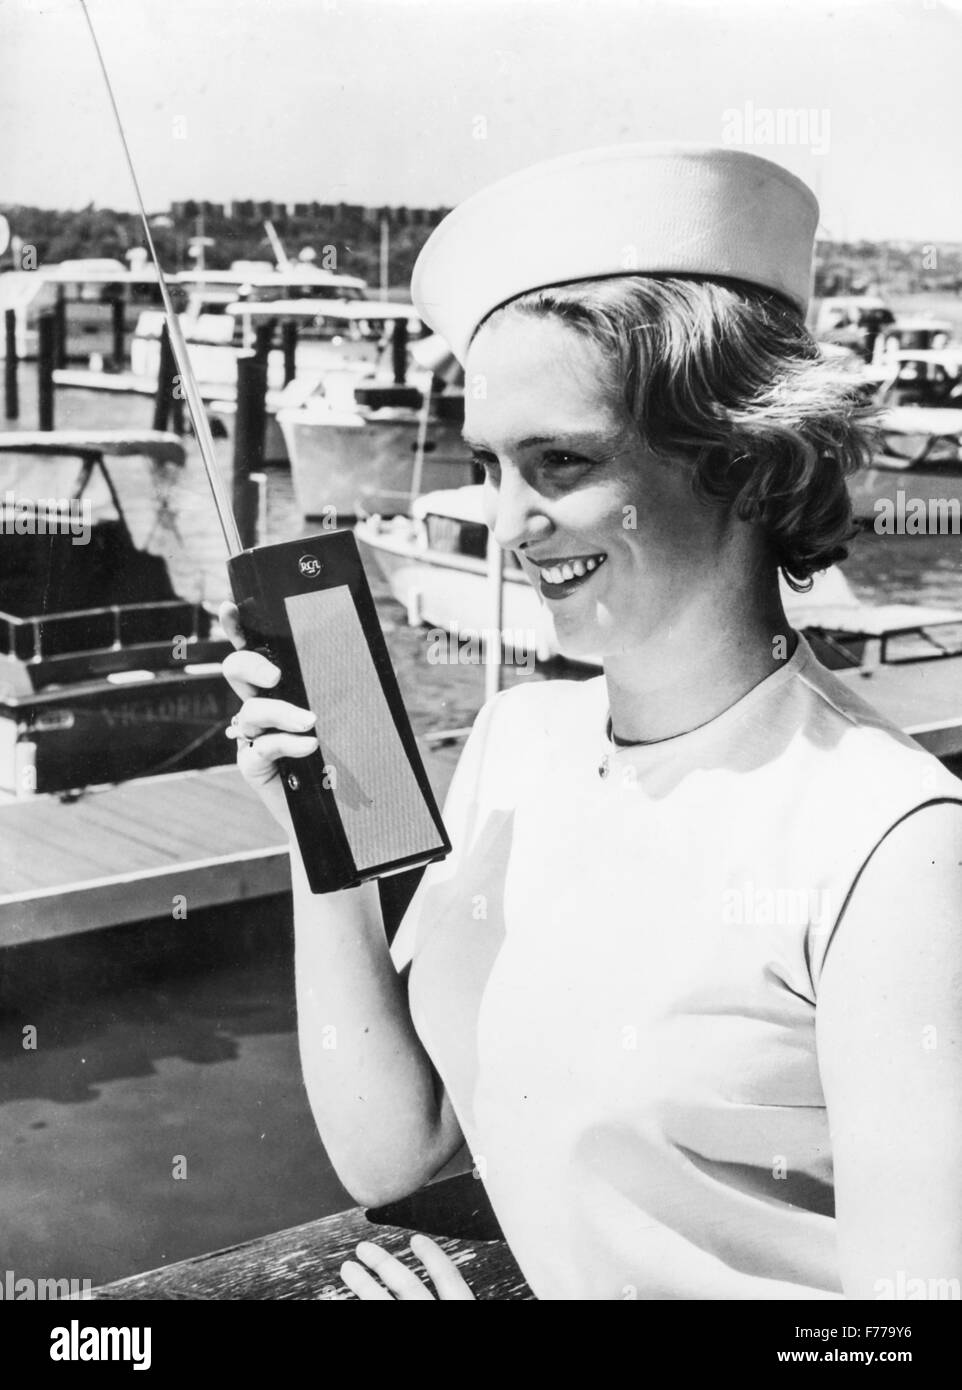 a model test a new walkie talkie for civilian use,1962 - Stock Image